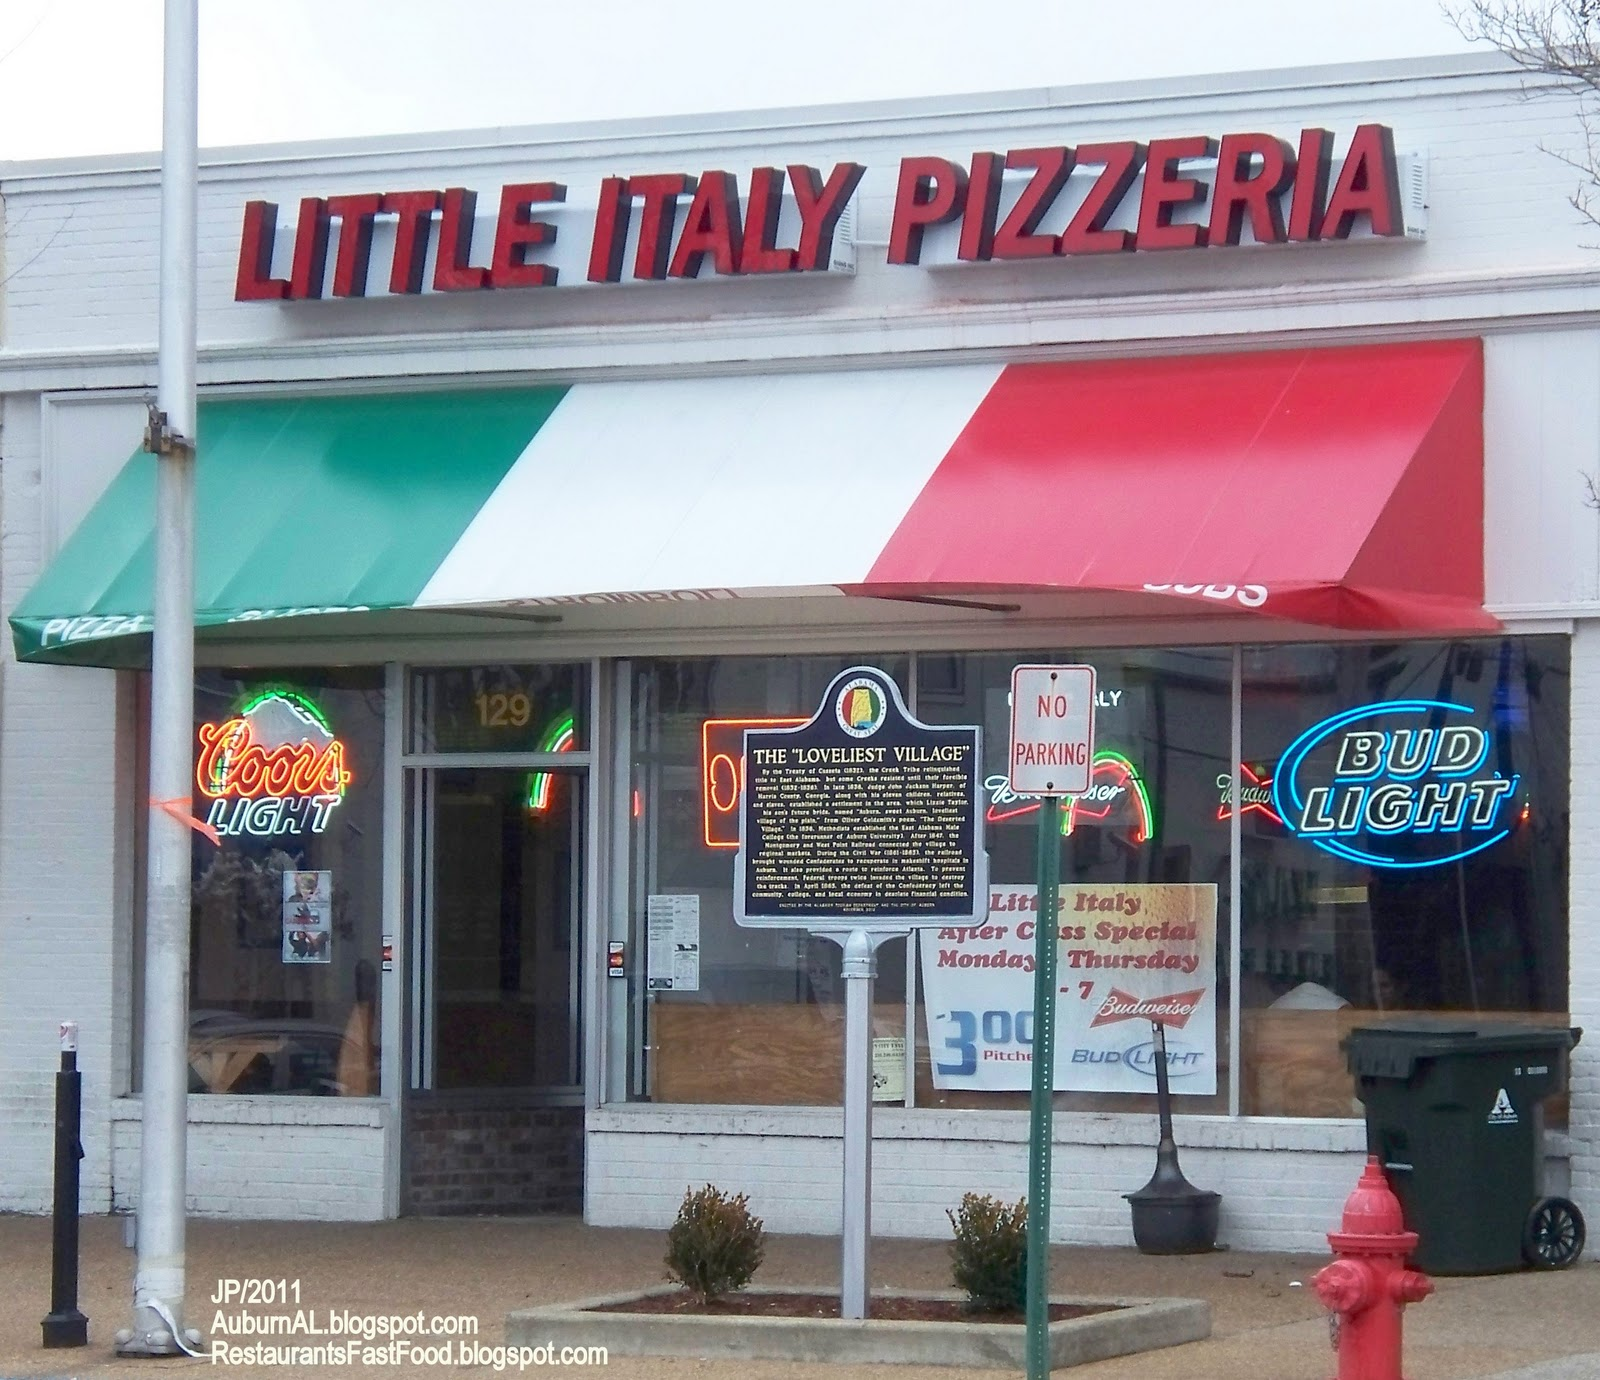 Little Italy Pizza Auburn Alabama Pizzeria Restaurant Al